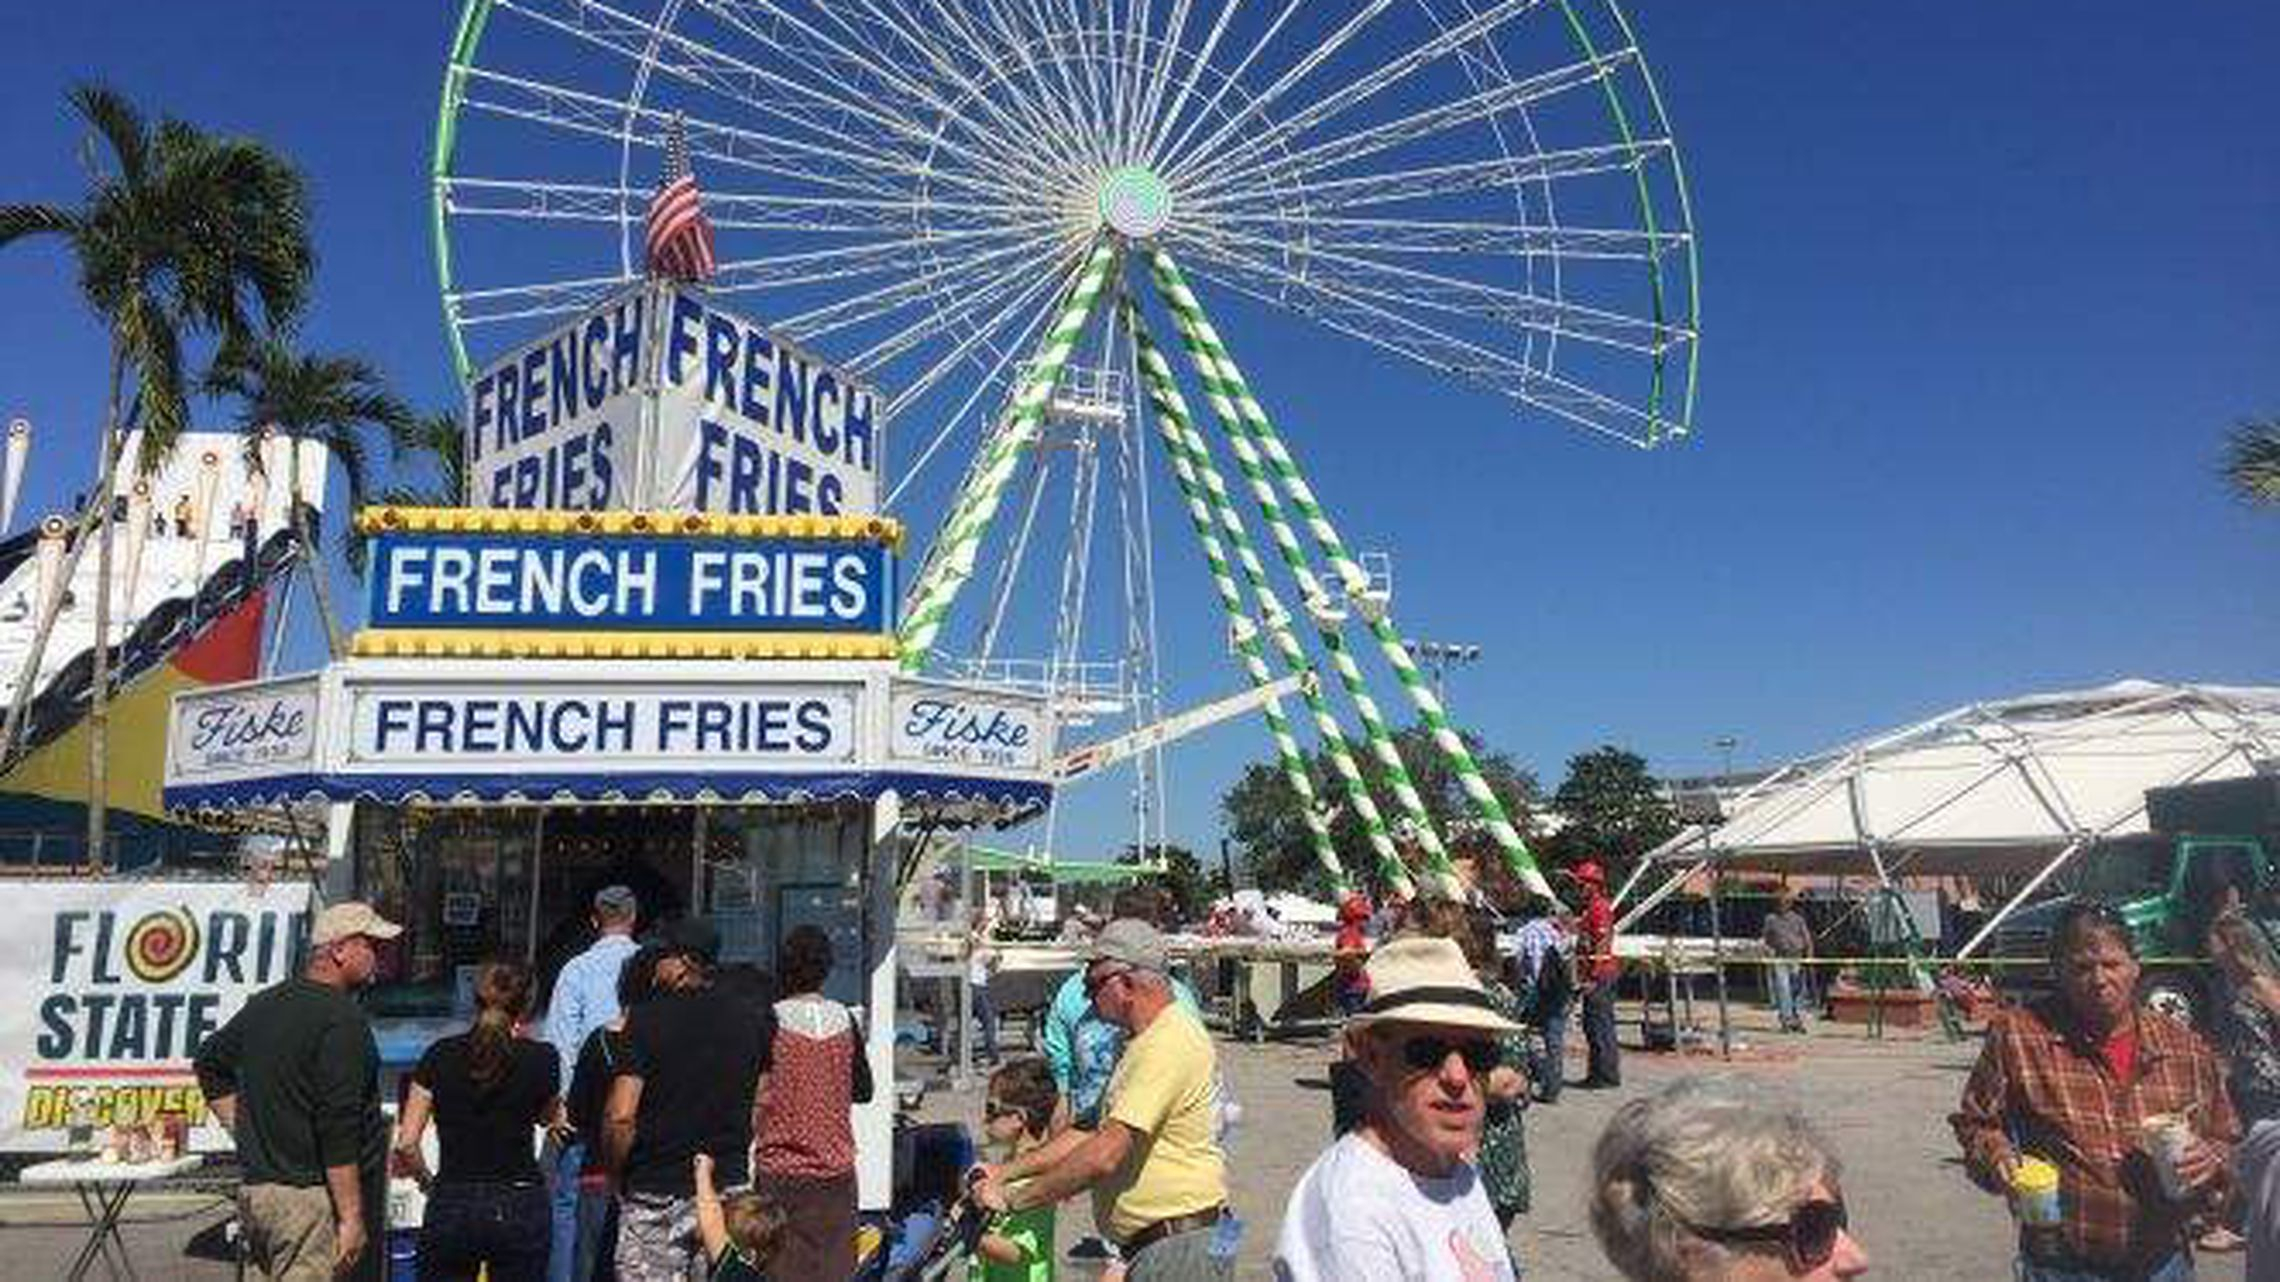 Largest Traveling Ferris Wheel Finally Spinning, Midway Intended For Schedule Of Events For Monday At Florida State Fairgrounds